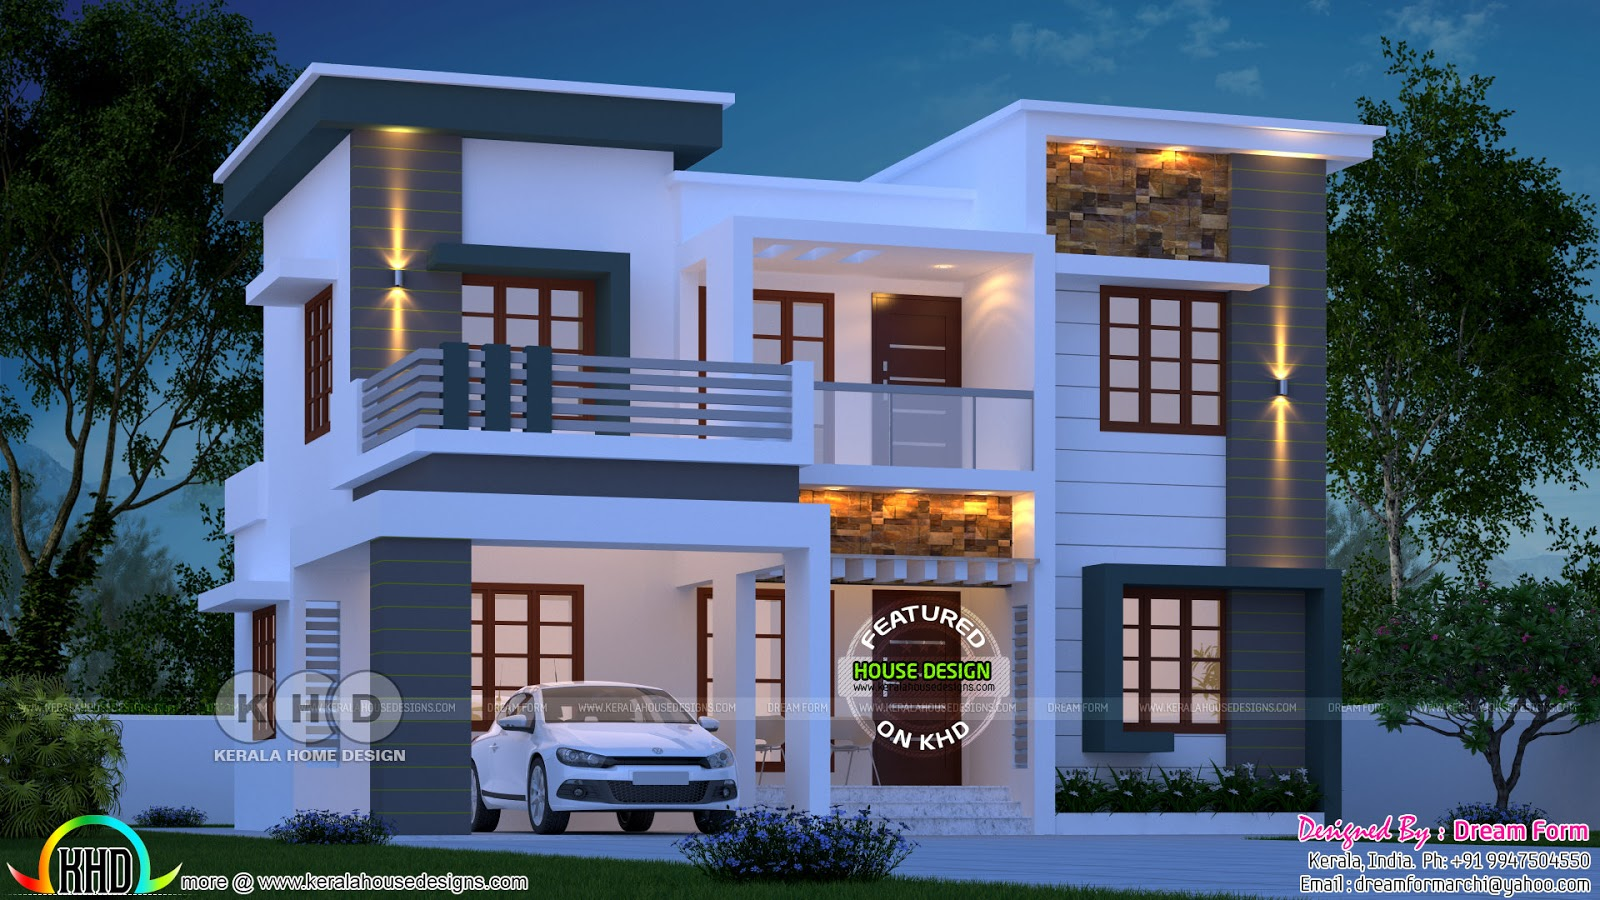 1780 Square Feet 4 Bedroom Modern Home In Kerala Duplex House Design Exterior House Remodel Kerala House Design